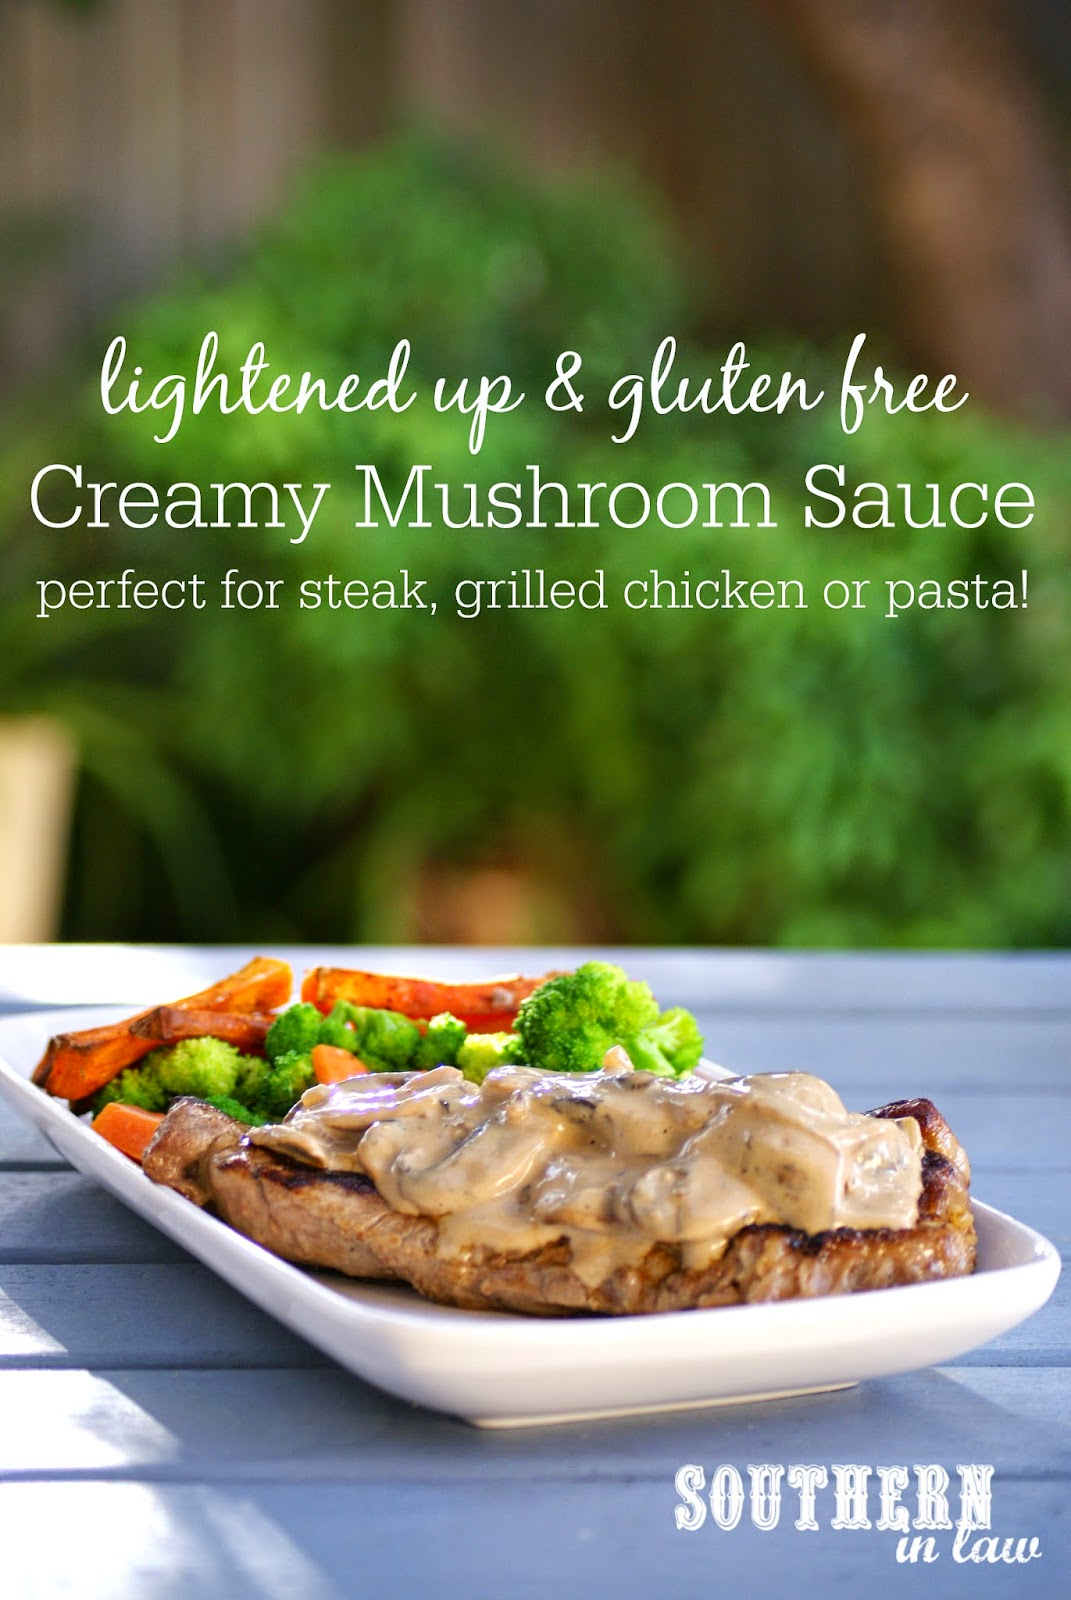 Gluten Free Creamy Mushroom Sauce Recipe - low fat, gluten free, clean eating friendly, low carb, healthy, lightened up